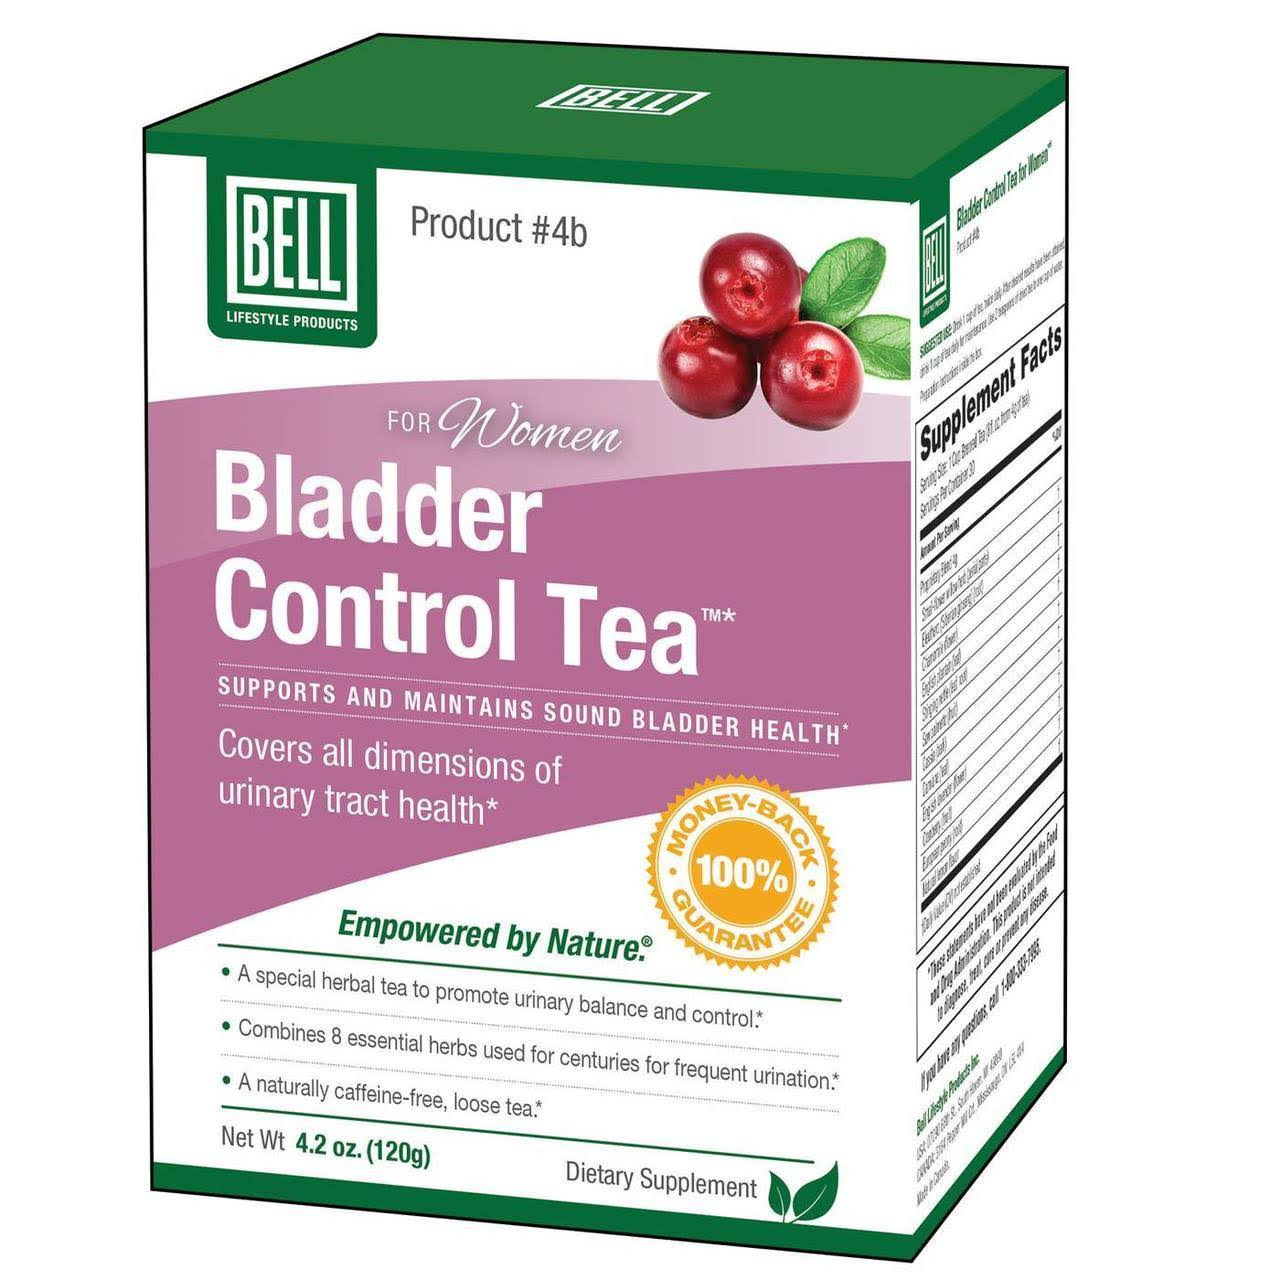 Bell Lifestyle Products Bladder Control Tea for Women - 120g